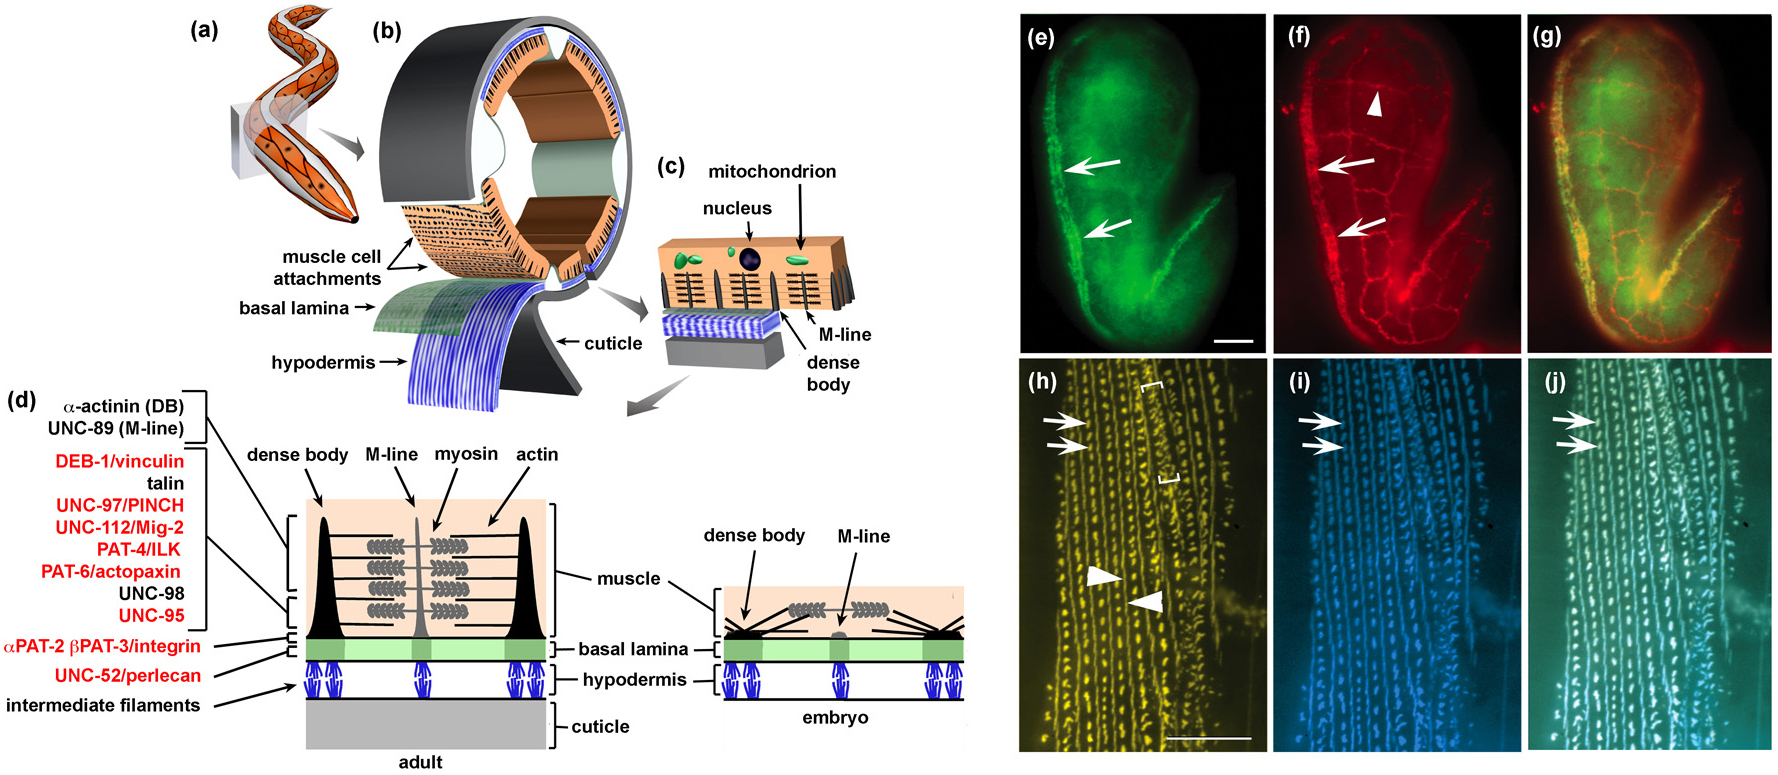 Sarcomere assembly in C. elegans muscle